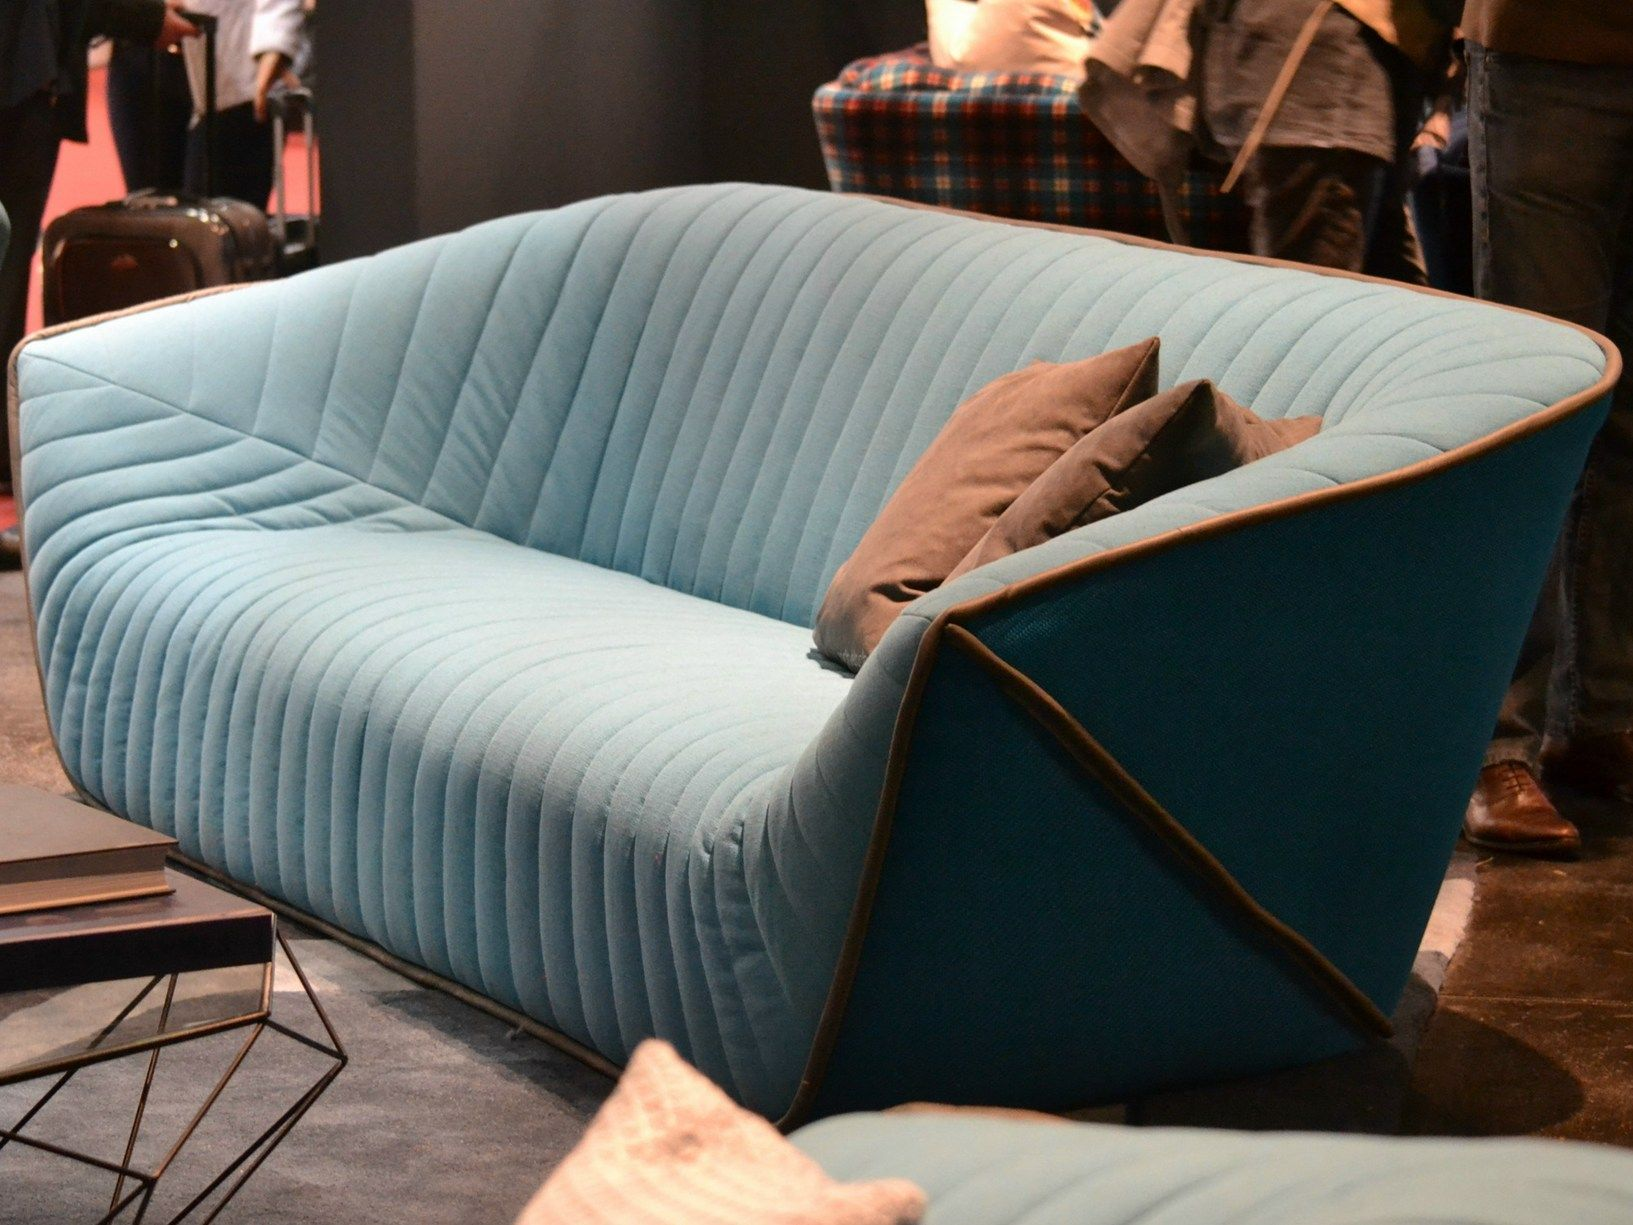 Art De Vivre By Roche Bobois At Isaloni # Canape Cinema Roche Bobois